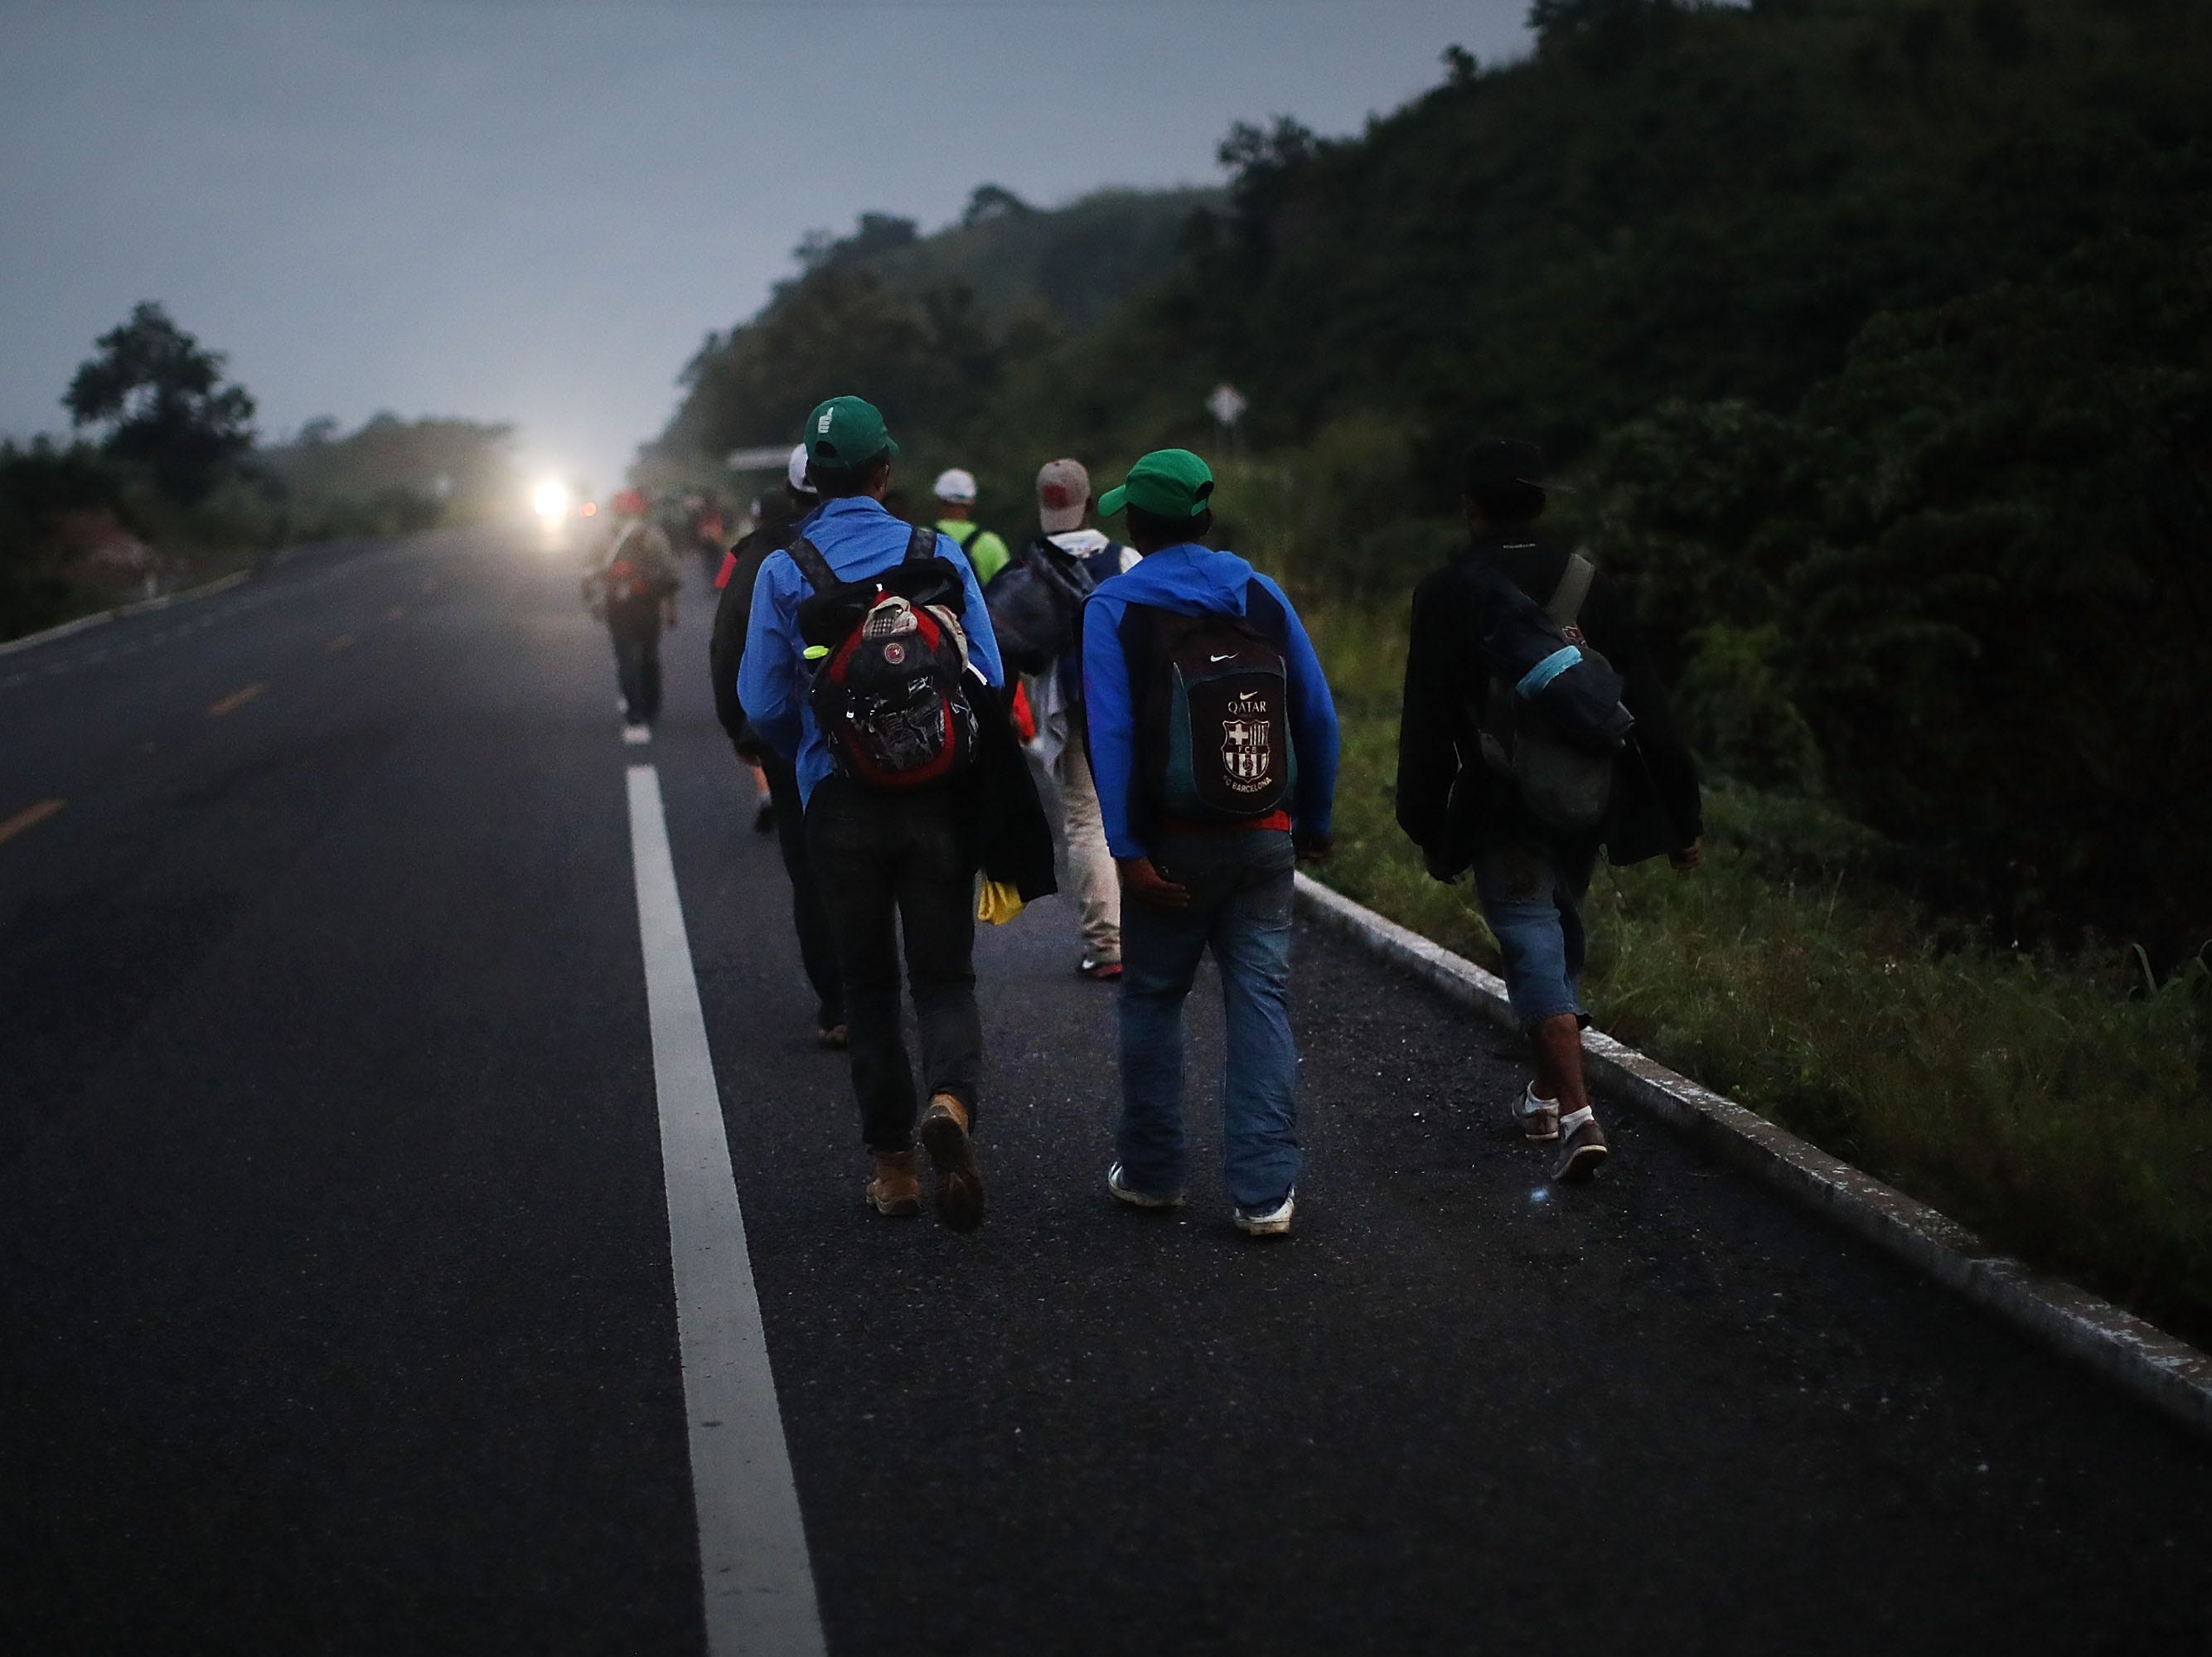 Members of the Central American migrant caravan move to the next town at dawn on Nov. 02, 2018 in Matias Romero, Mexico.